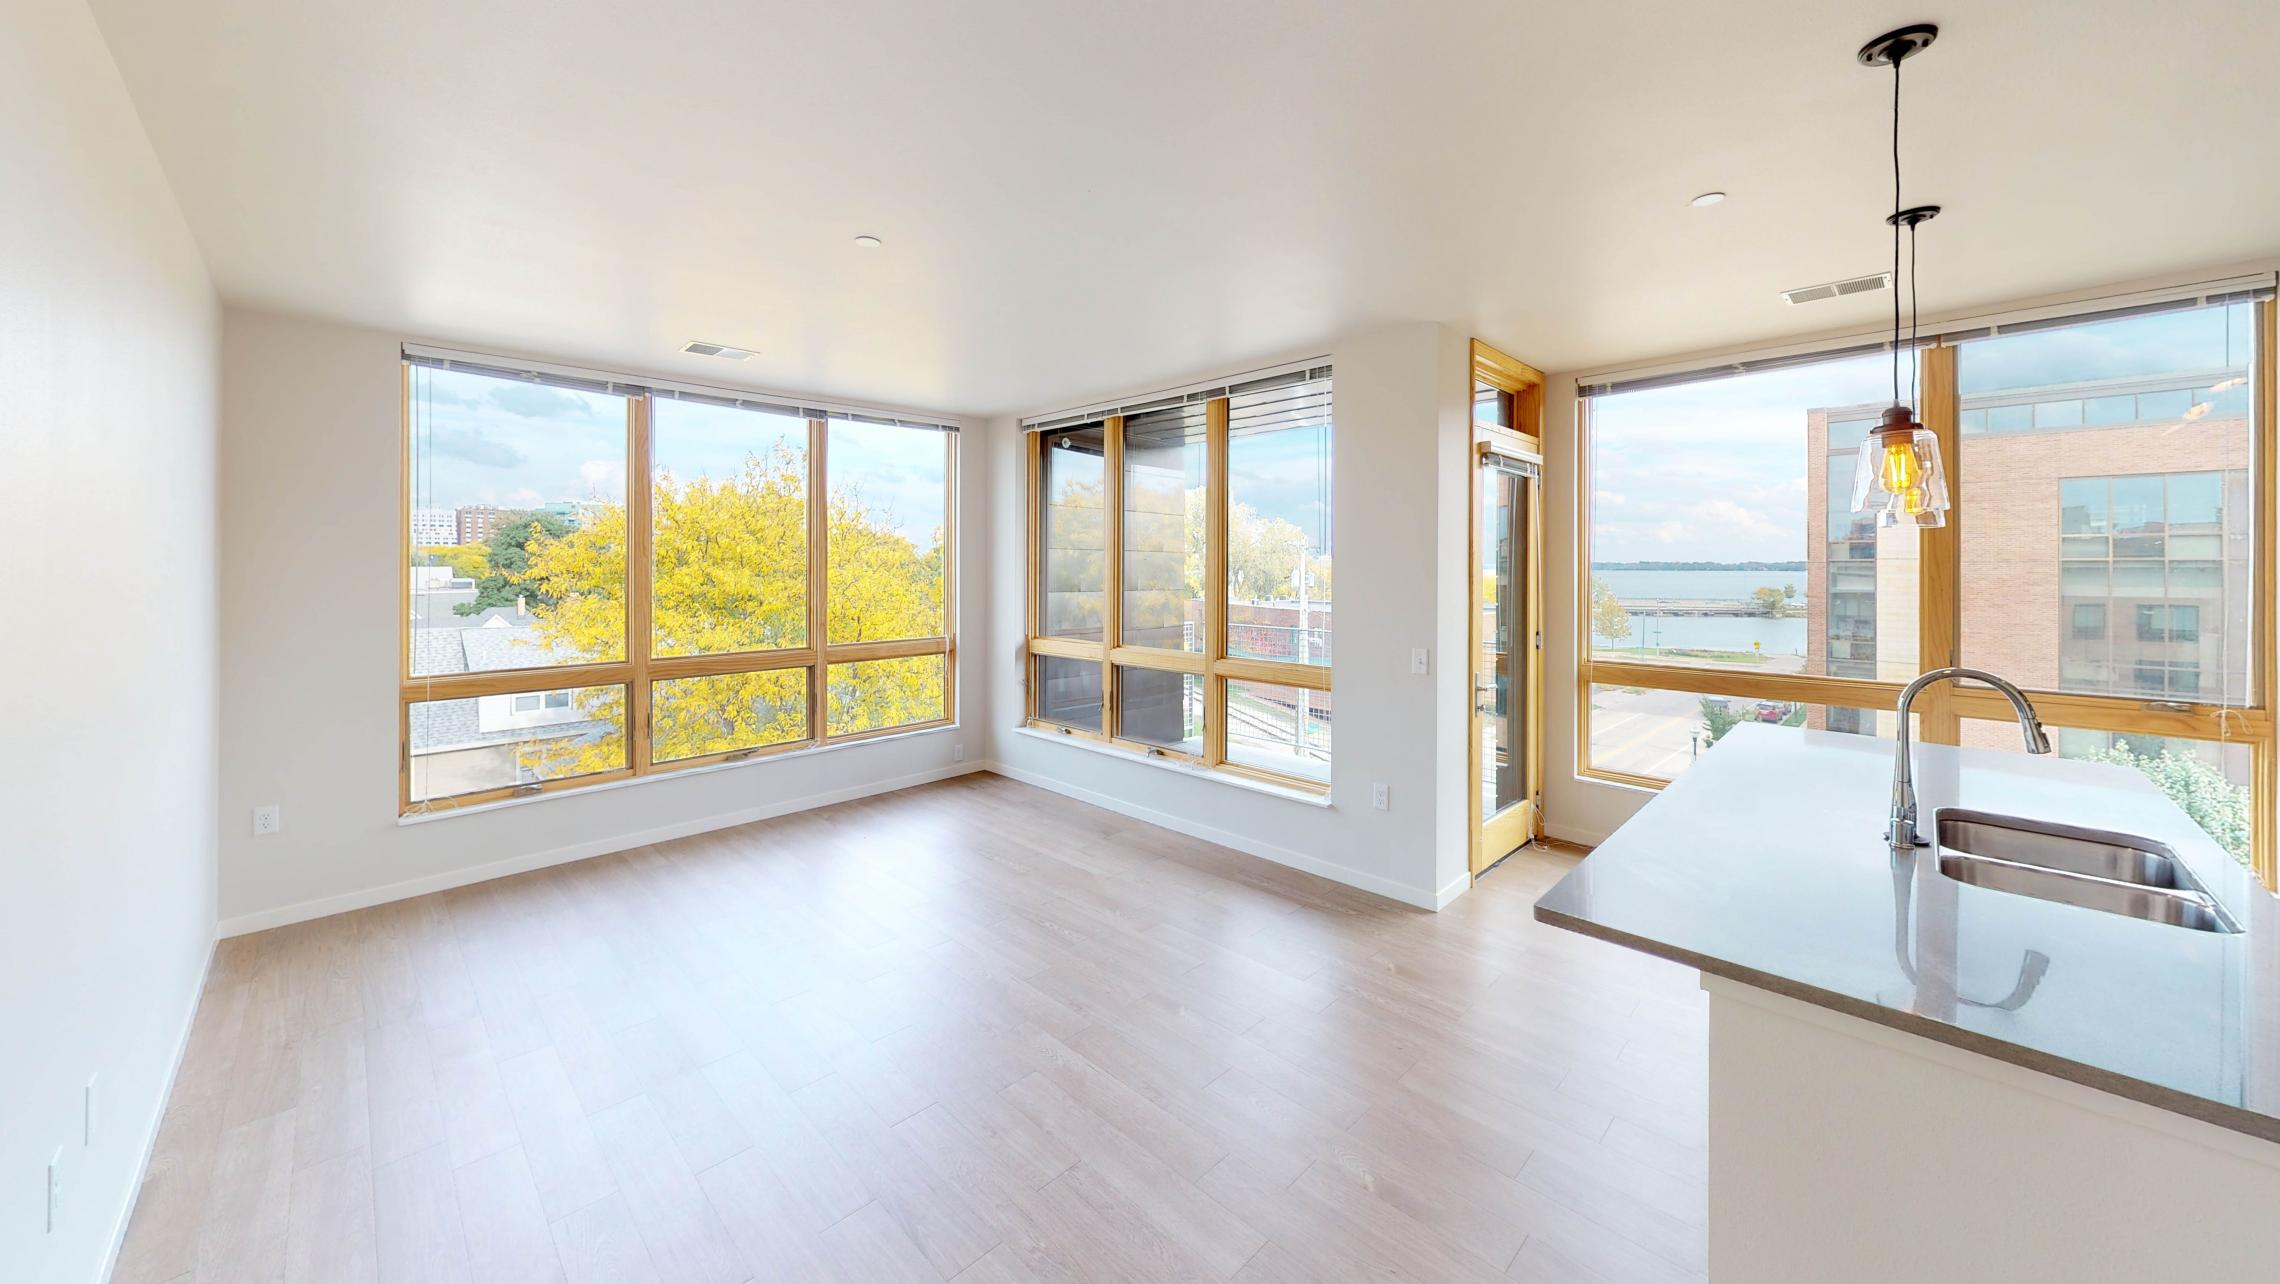 Quarter-Row-Yards-Apartment-401-Corner-Windows-three-Bedroom-Modern-Upscale-Fitness-Lake-Capitol-Views-Downtown-Madison-Balcony-Amenities-Luxury